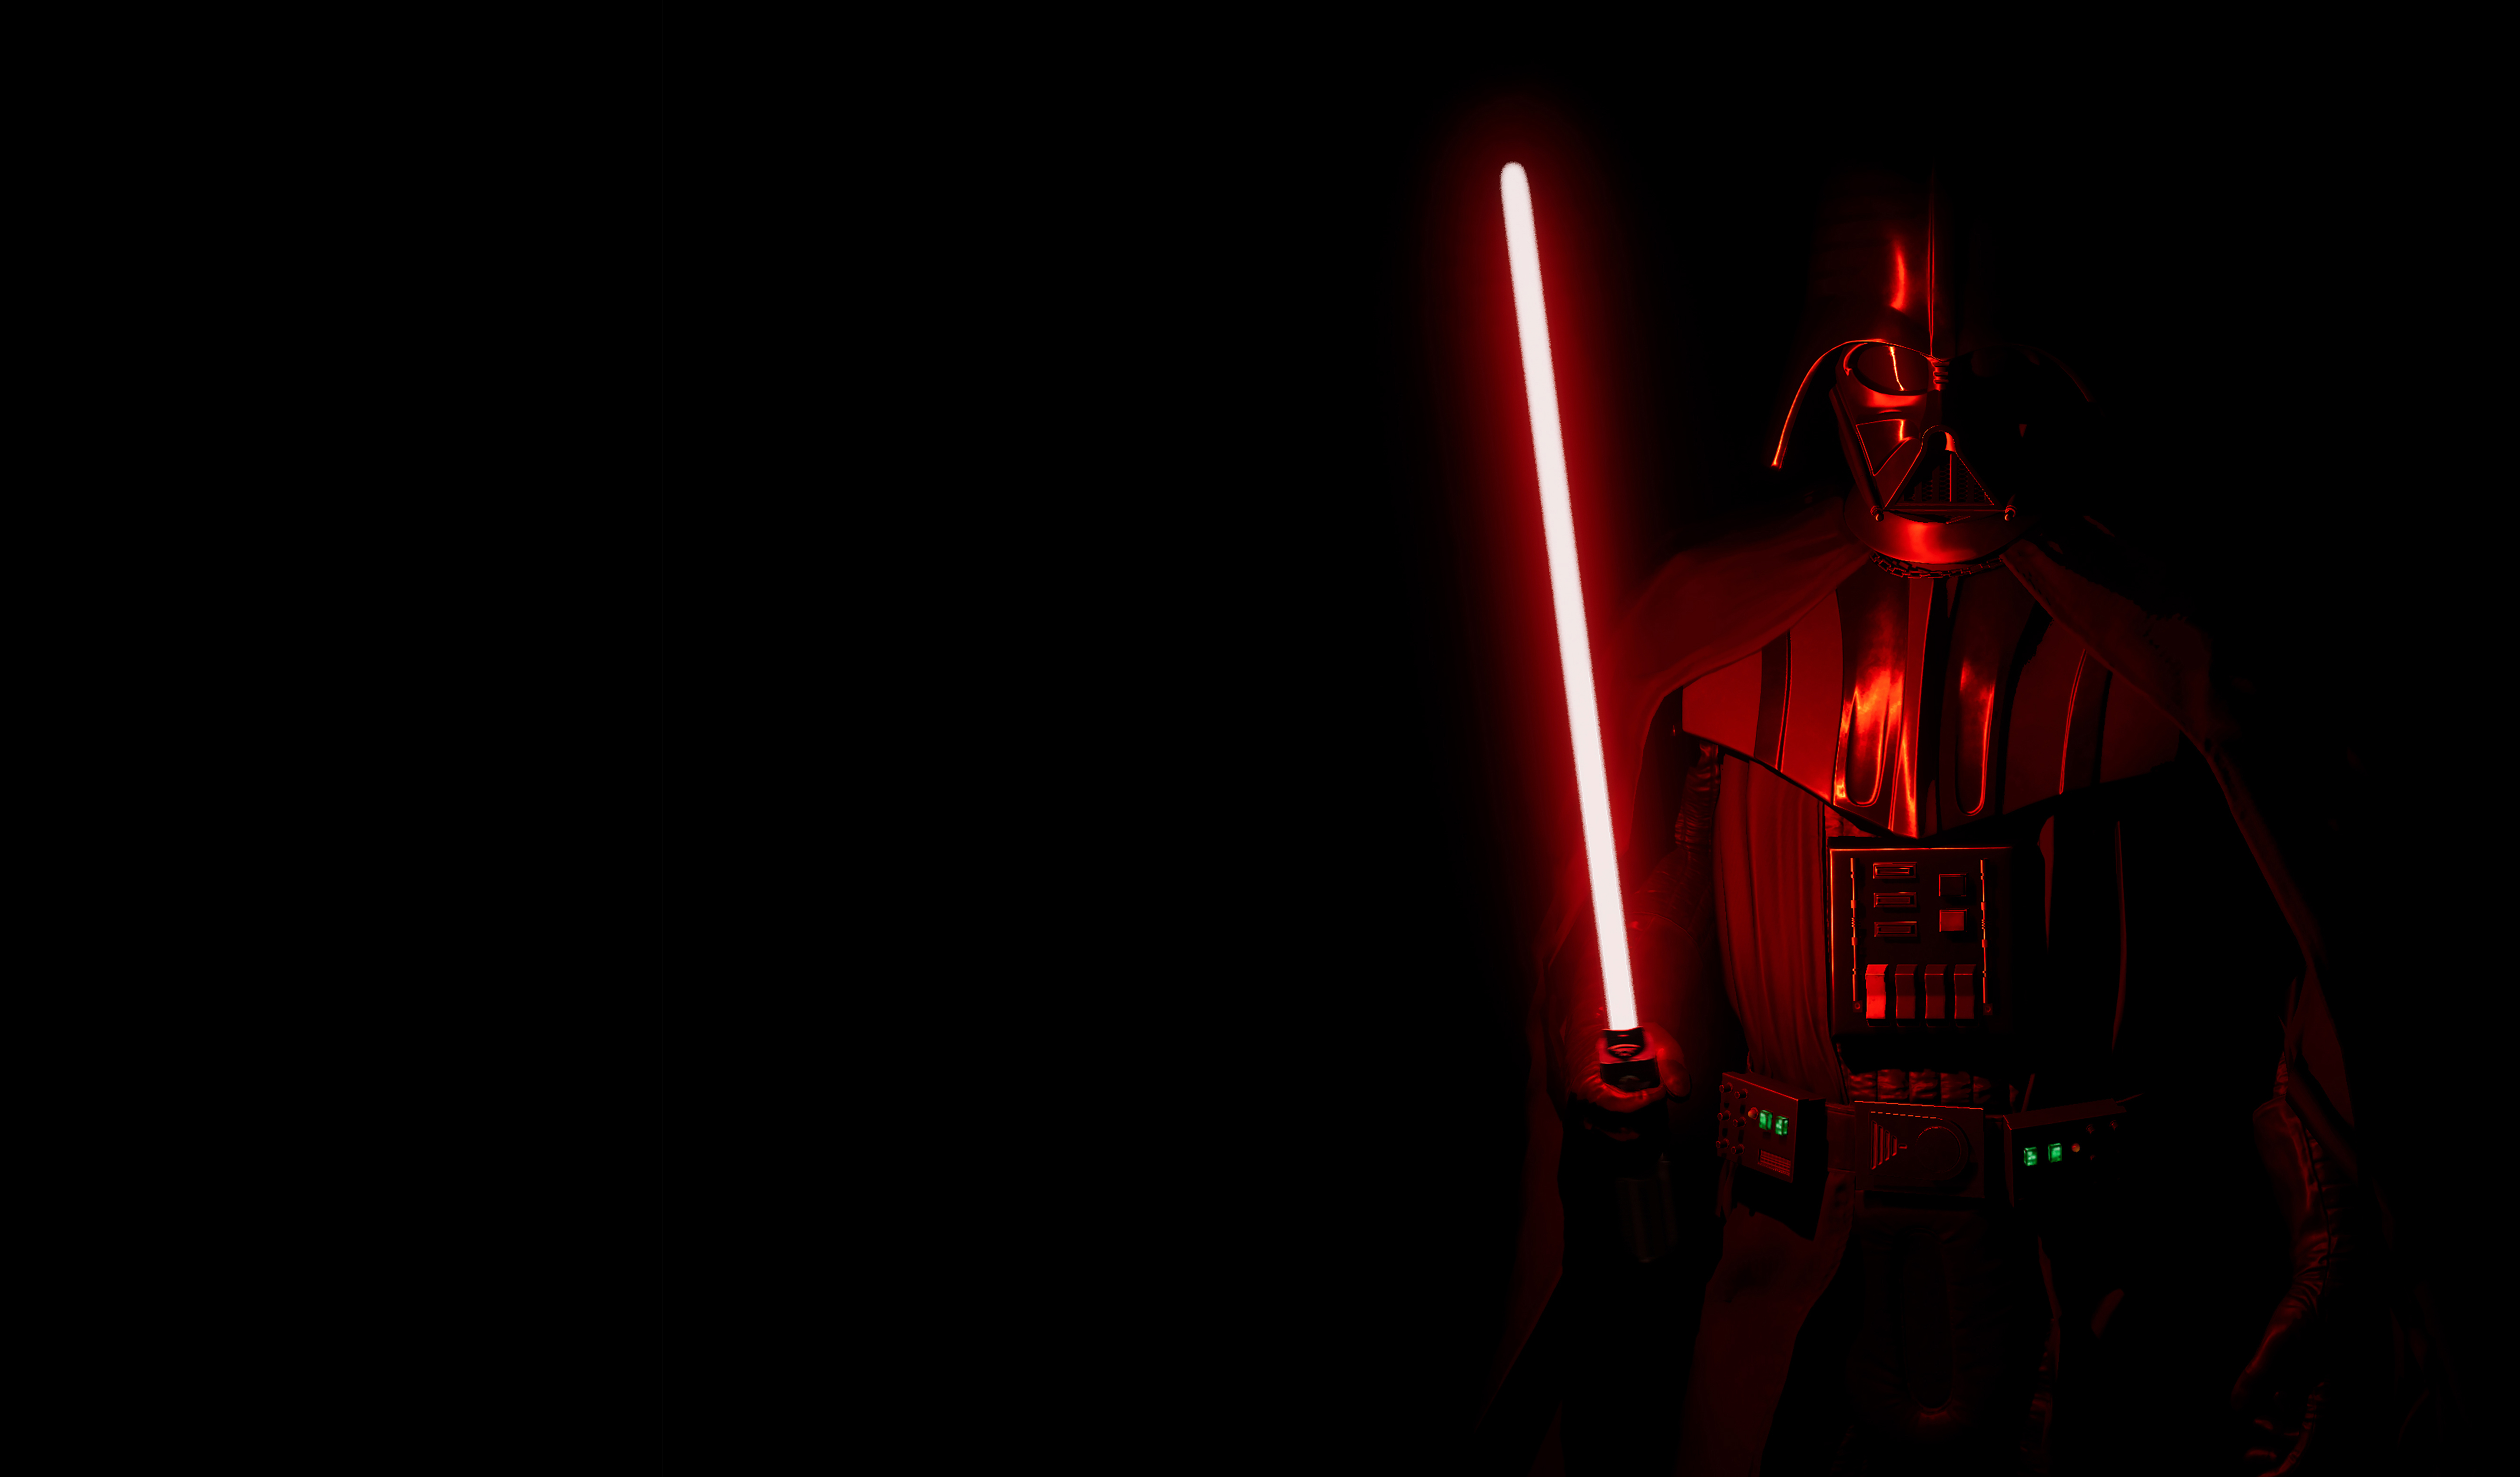 Hd Darth Vader Wallpaper Posted By Ryan Mercado